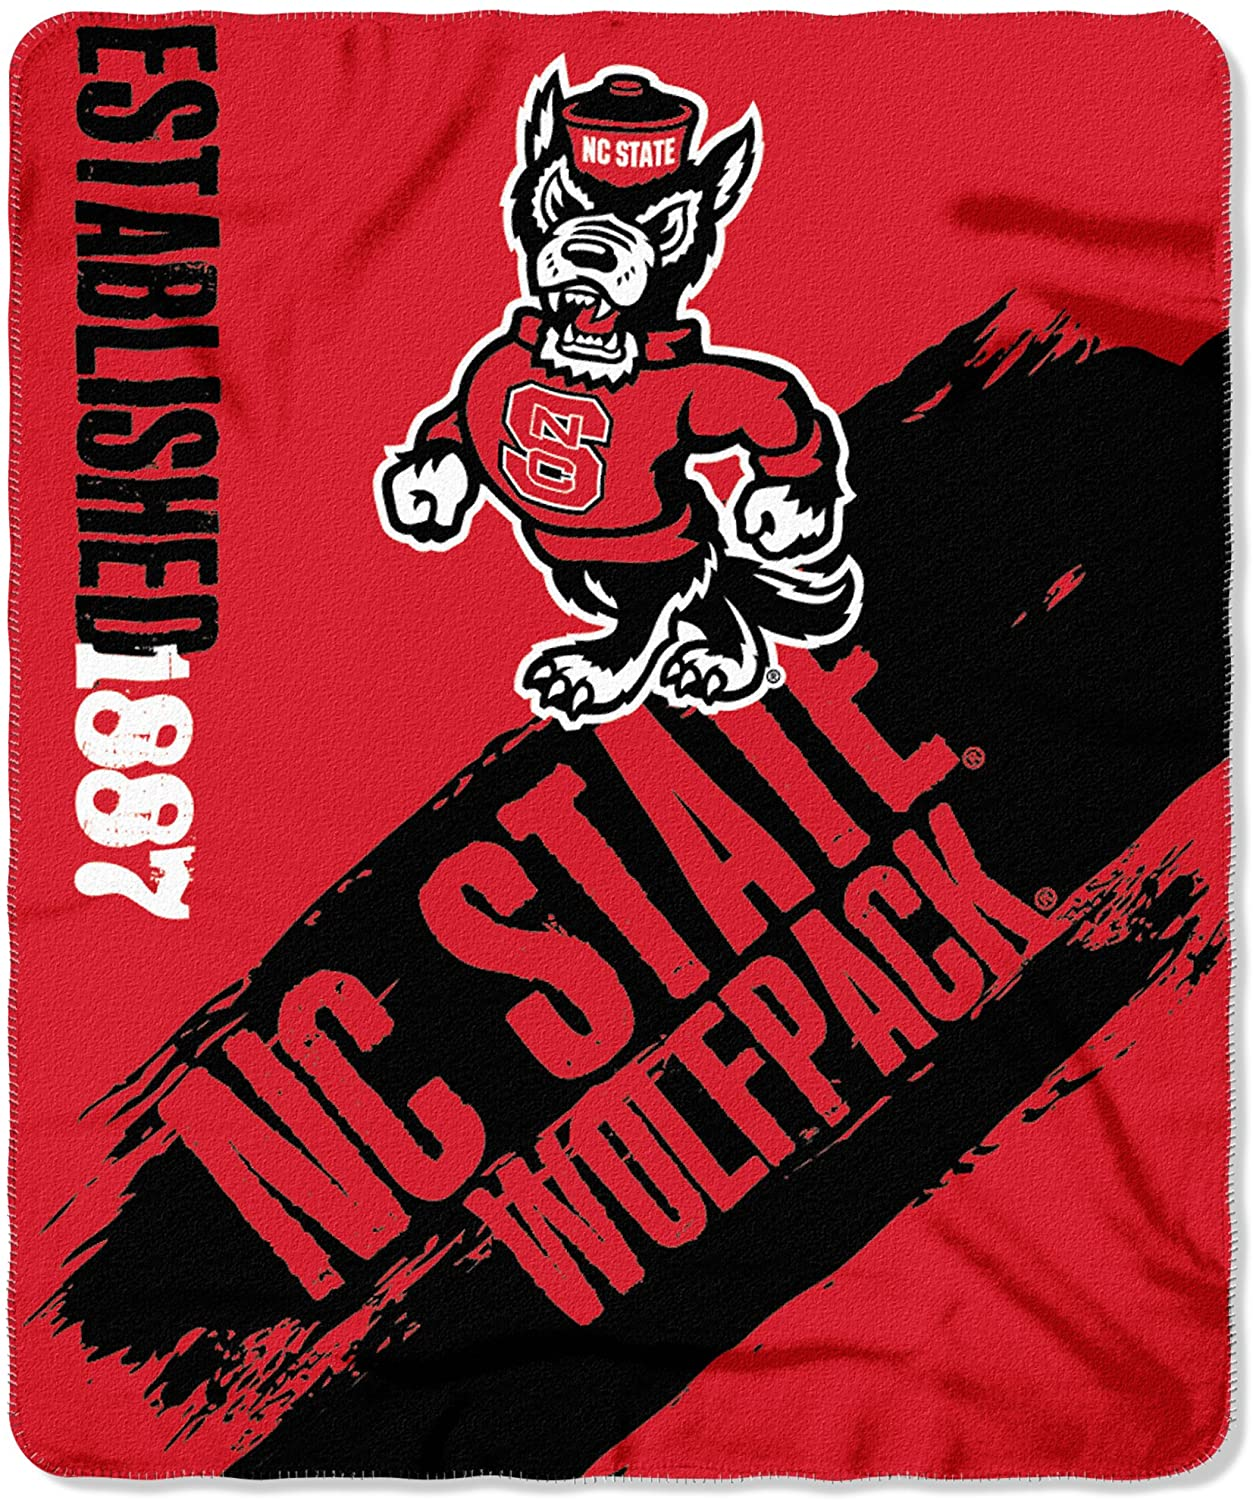 Officially Licensed Ncaa Printed Throw North Carolina State Wolfpack Fleece Blanket